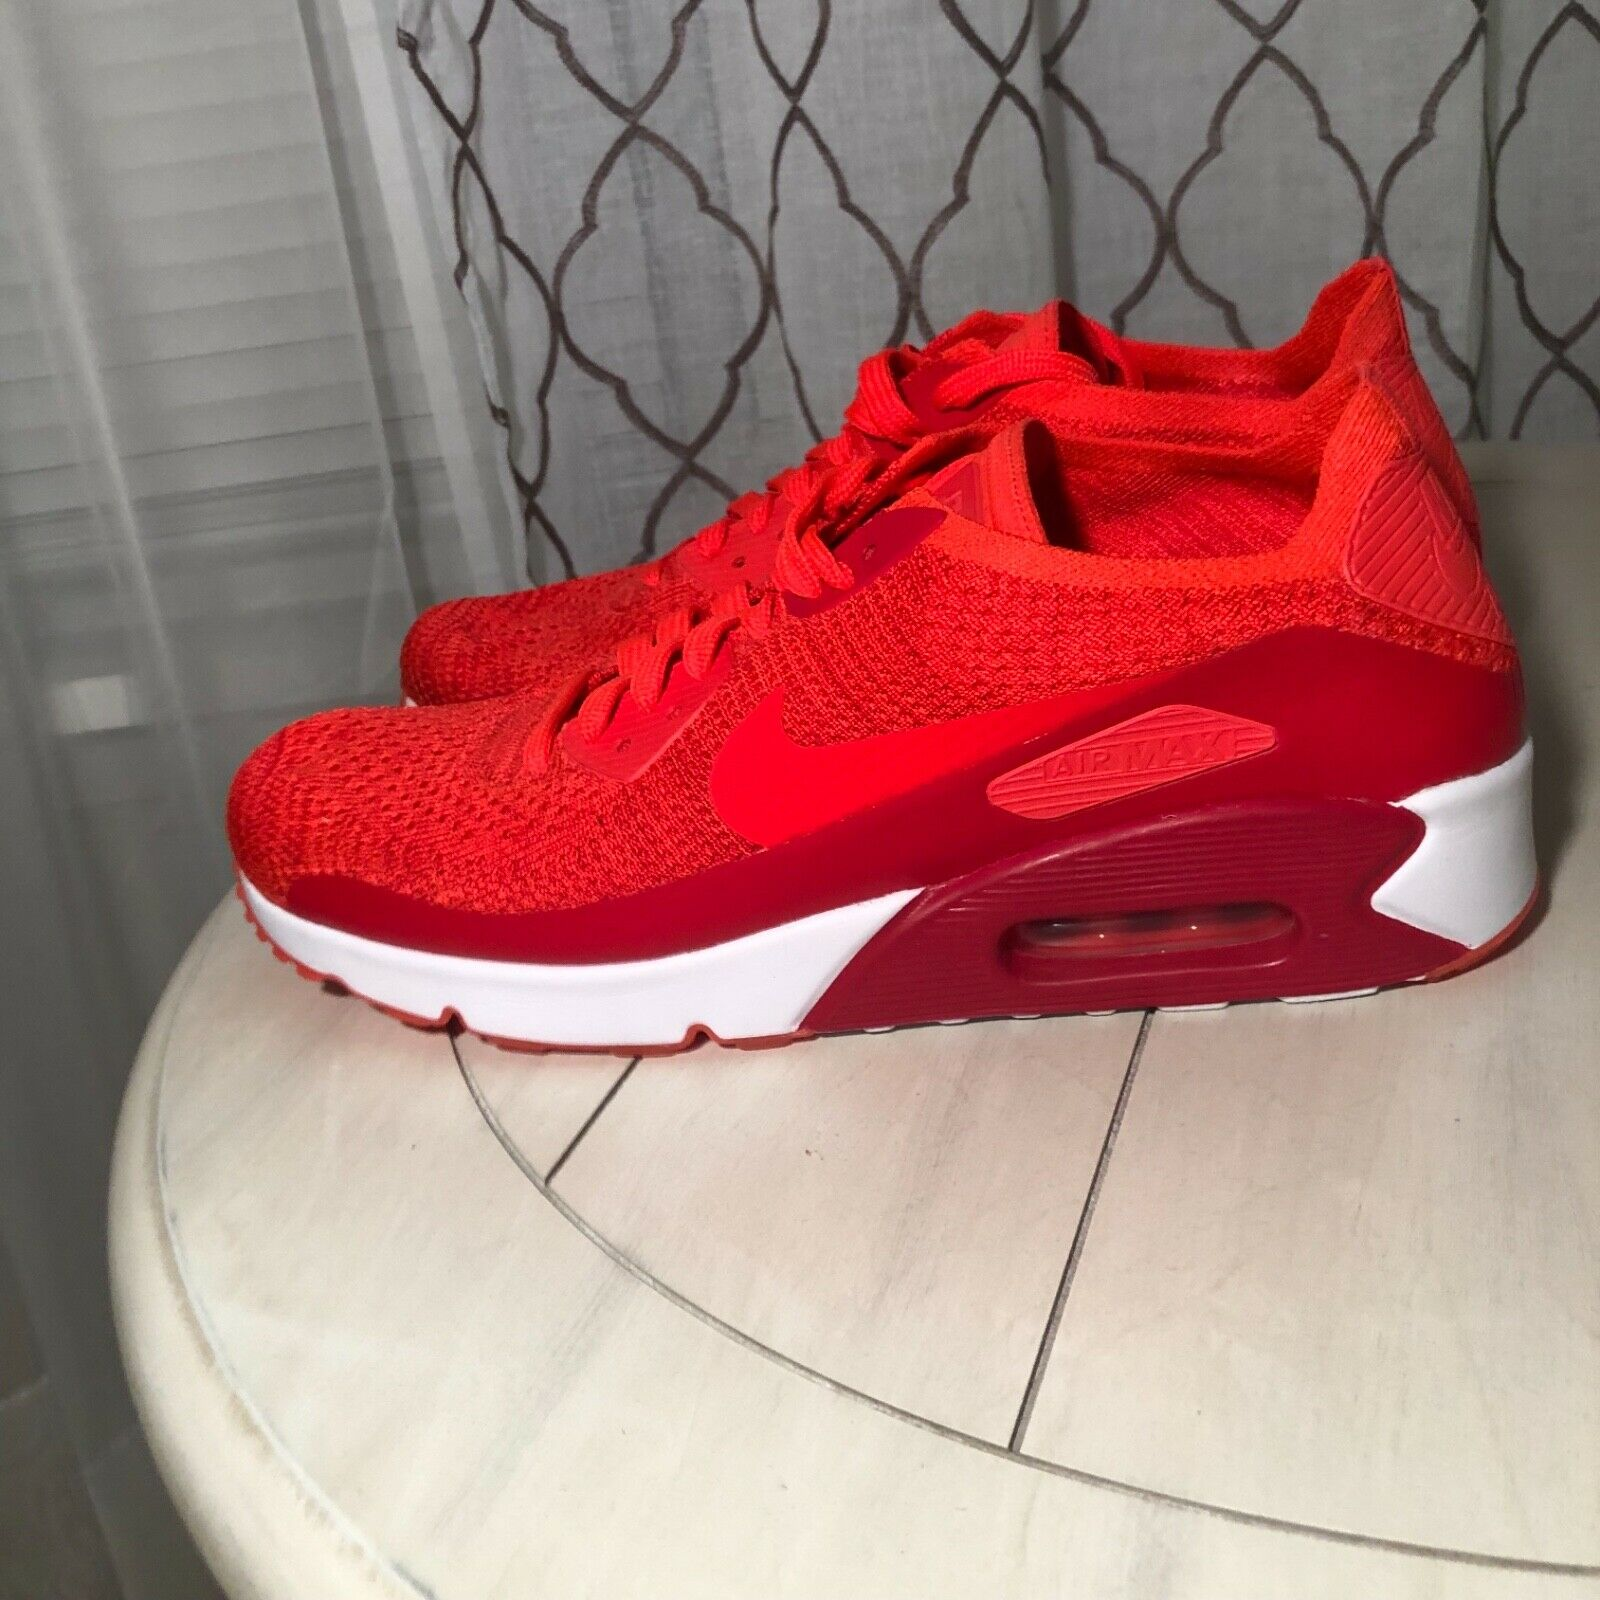 big sale 5e997 d3873 NIKE Air Max 90 Ultra 2.0 Flyknit Mens Size 10.5 red nwob